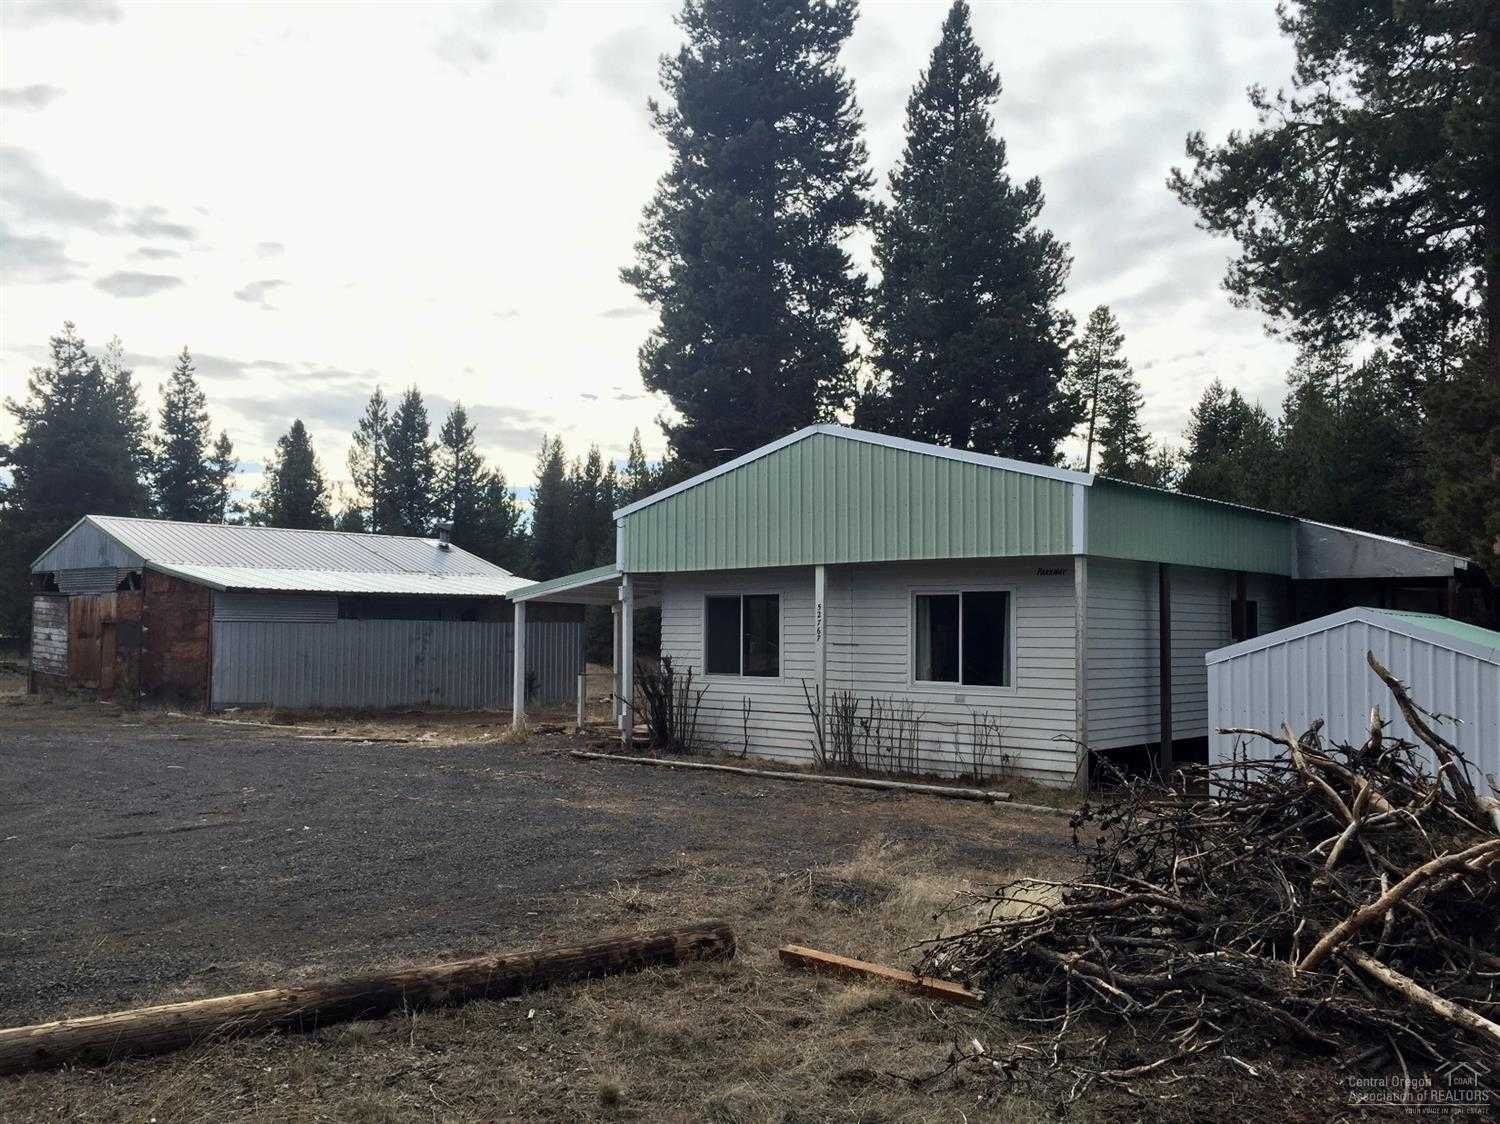 $84,000 - 3Br/2Ba -  for Sale in La Pine